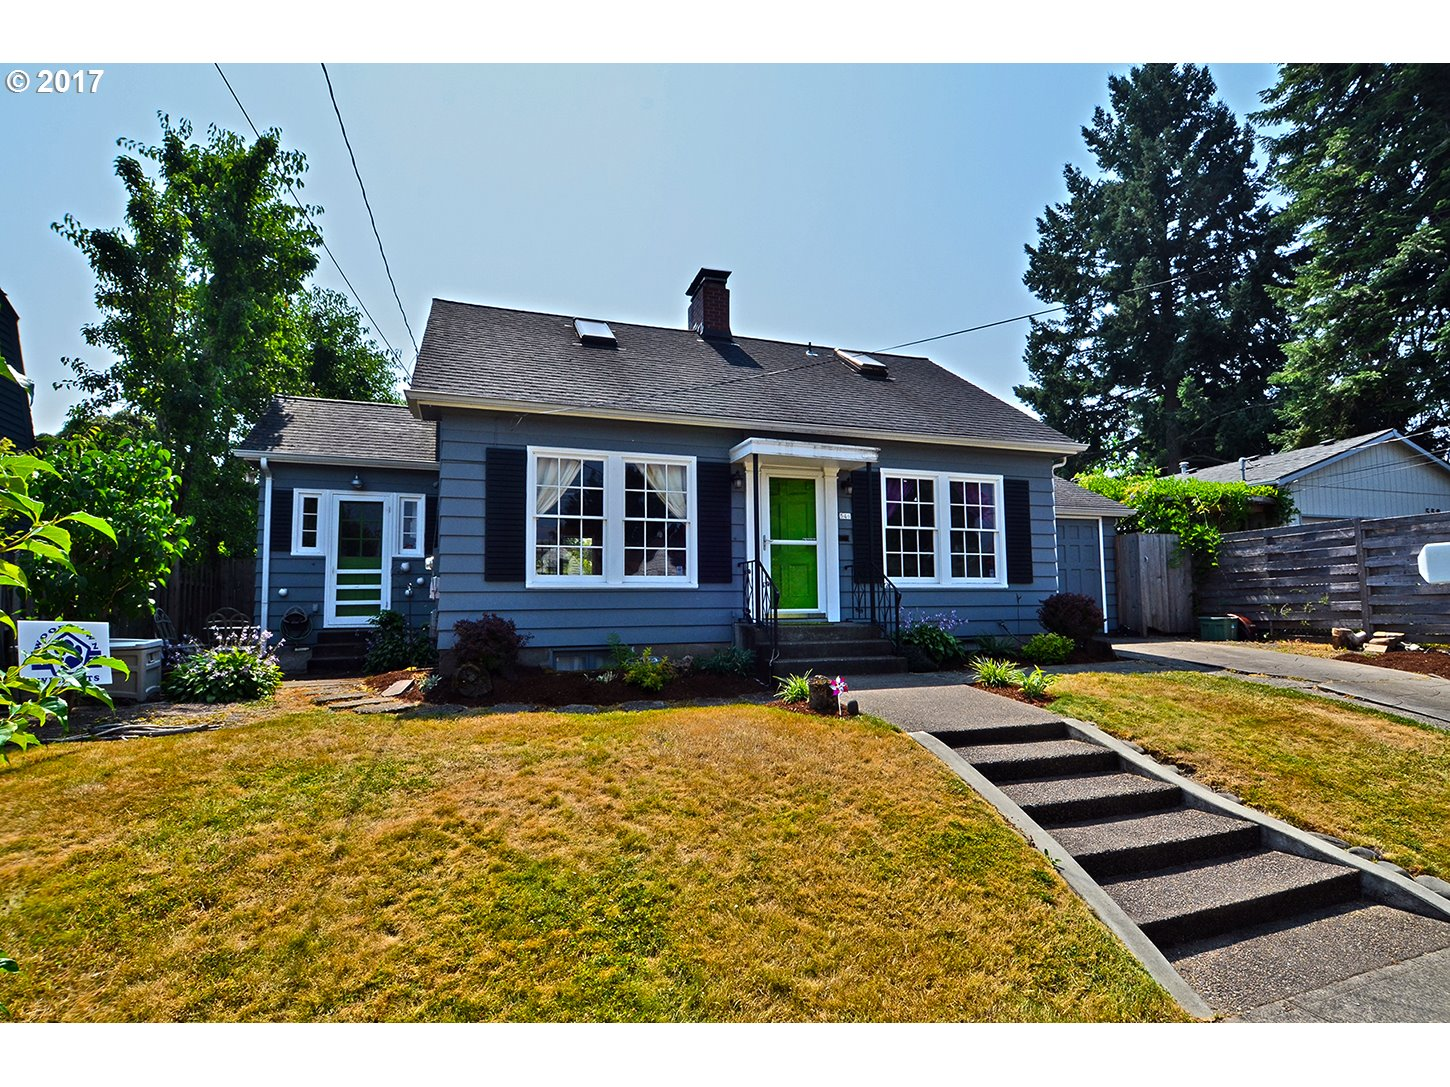 Open house Aug 19 1-4  Piedmont neighborhood. Adorable home, open floor plan with huge living rm w/beamed ceilings, remodeled galley kitchen, spacious dining rm, 3 bdrms + 1 non-conforming bdrm. 2 fireplaces, lower level set up for family area, separate bonus rm w/ fireplace, tons of storage,& laundry.  Backyard retreat!! Awesome kids play area, shared with adult lounging & separate building storage and entertaining.